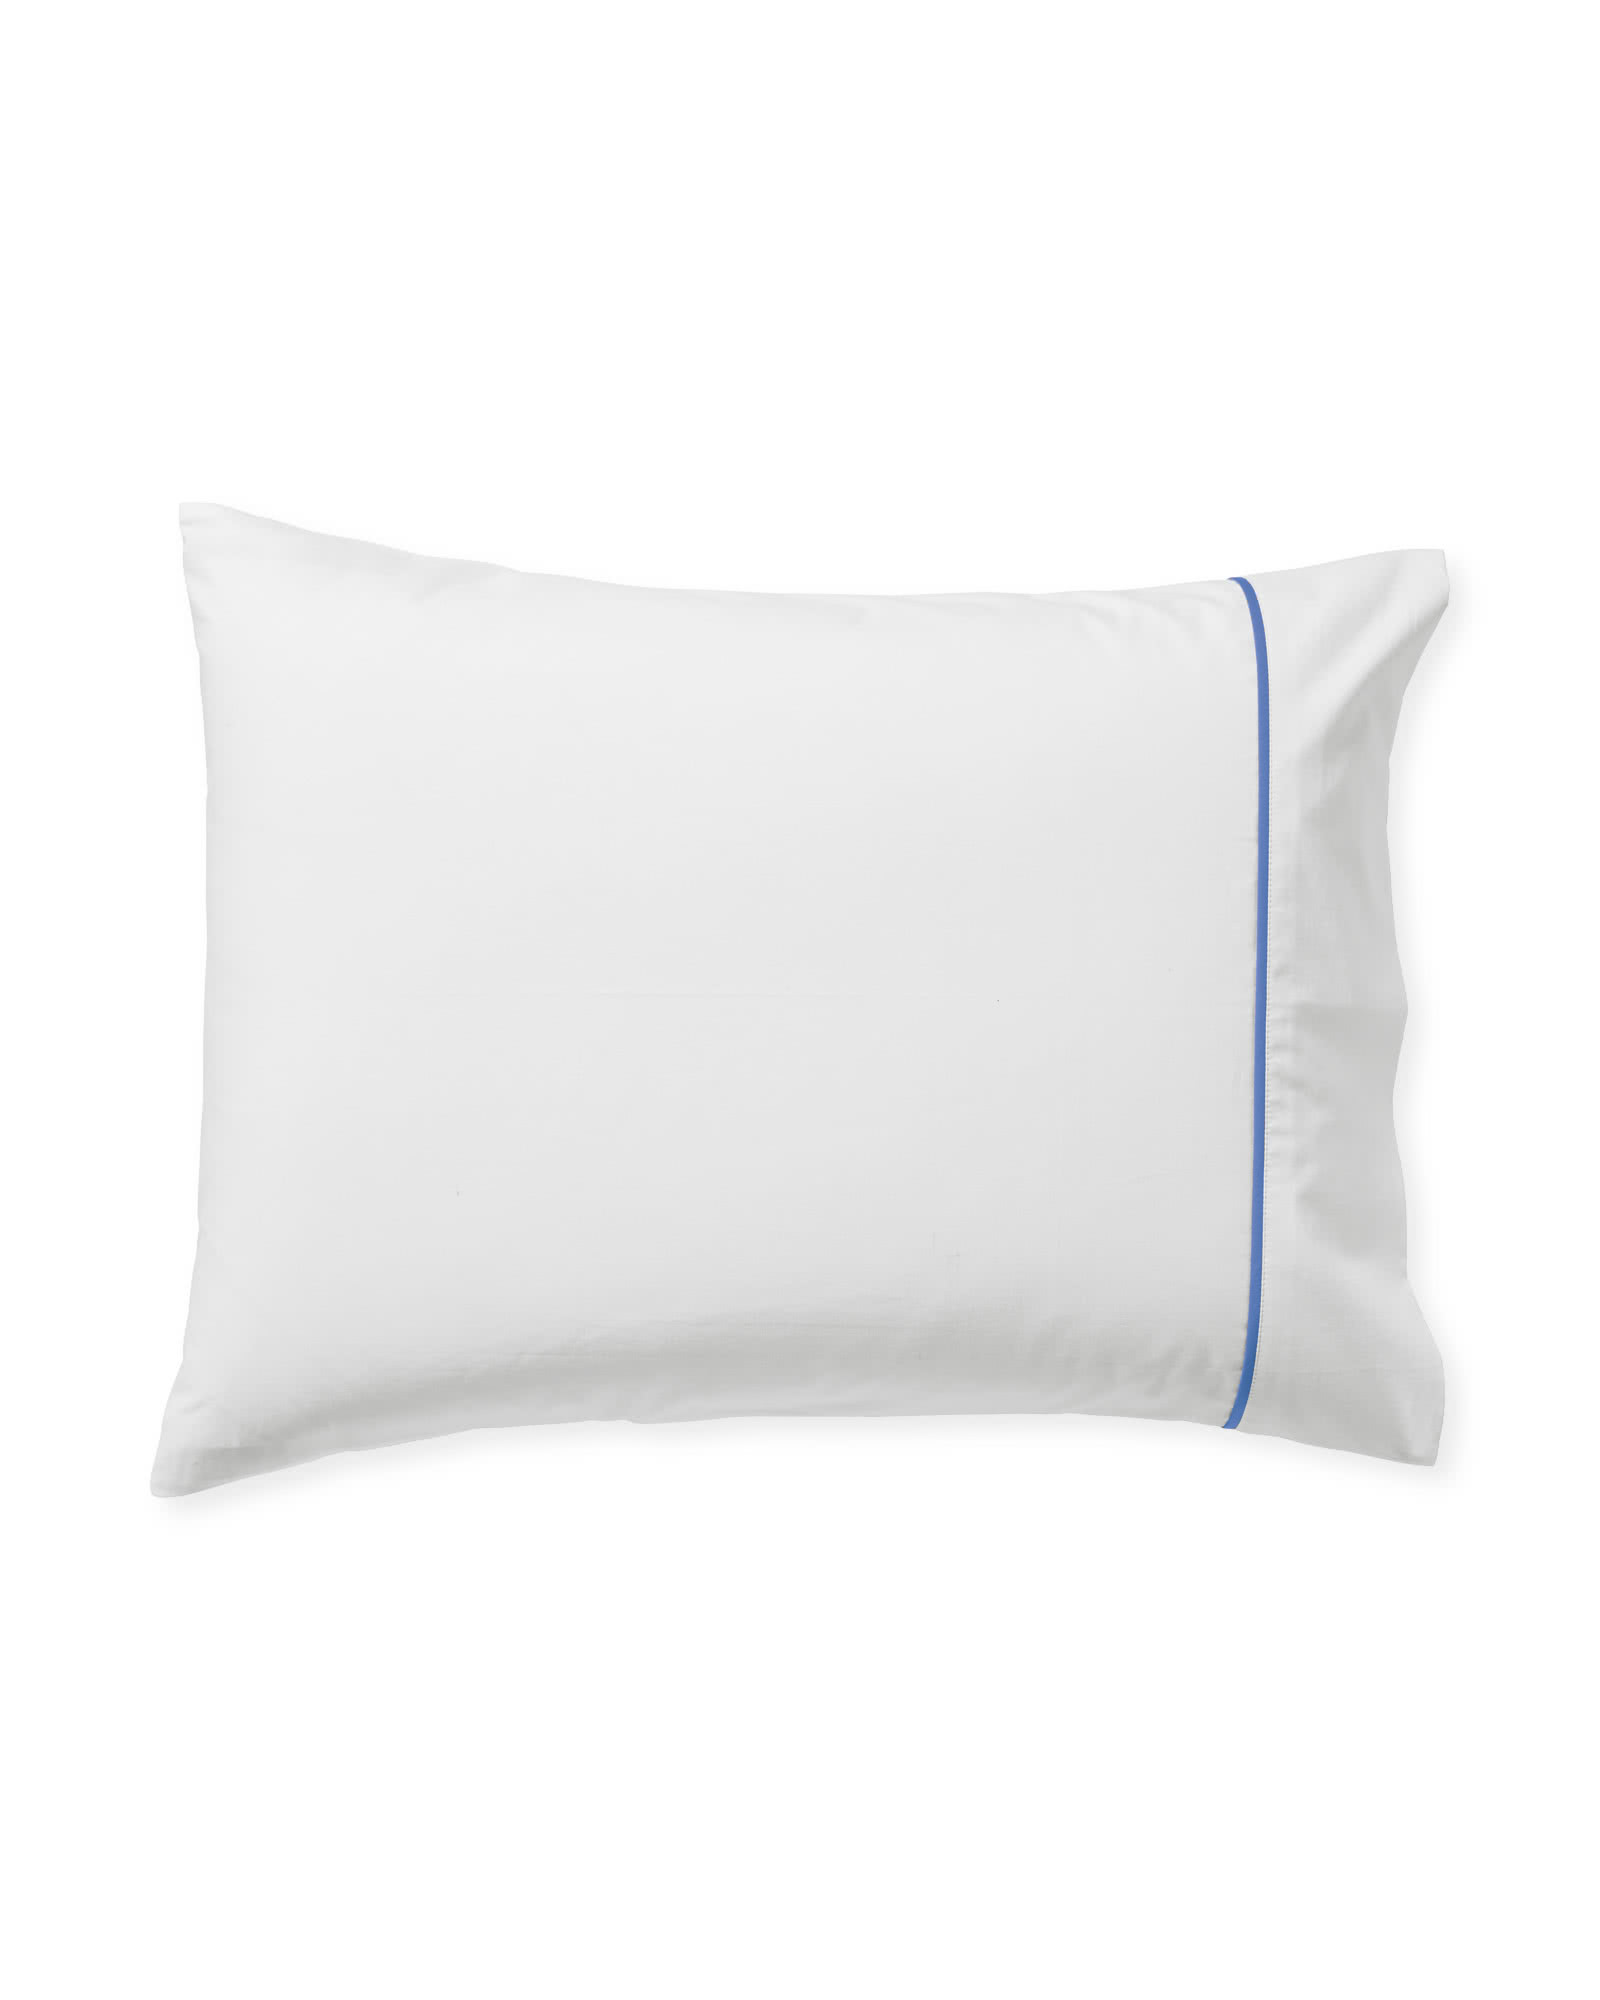 Beach Club Pillowcases (Extra Set of 2), French Blue